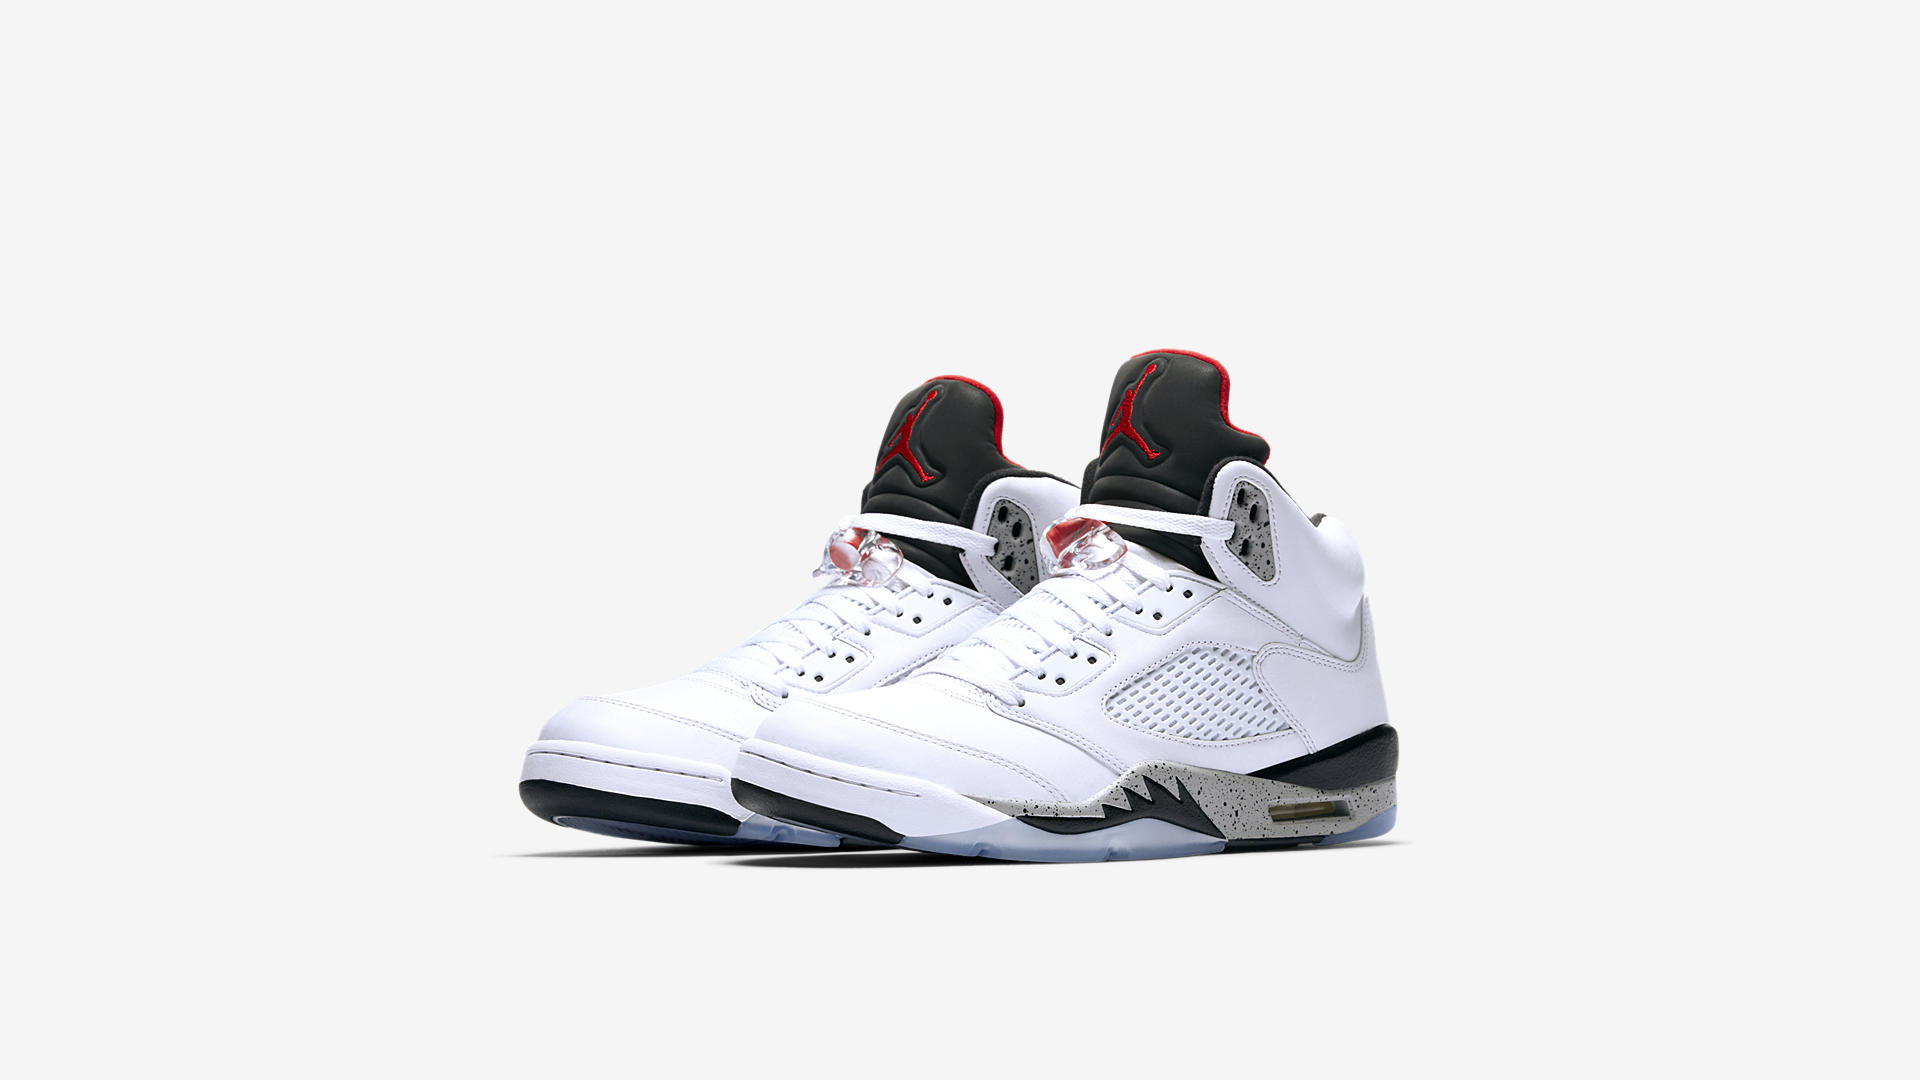 136027 104 Air Jordan 5 Retro White Cement 1